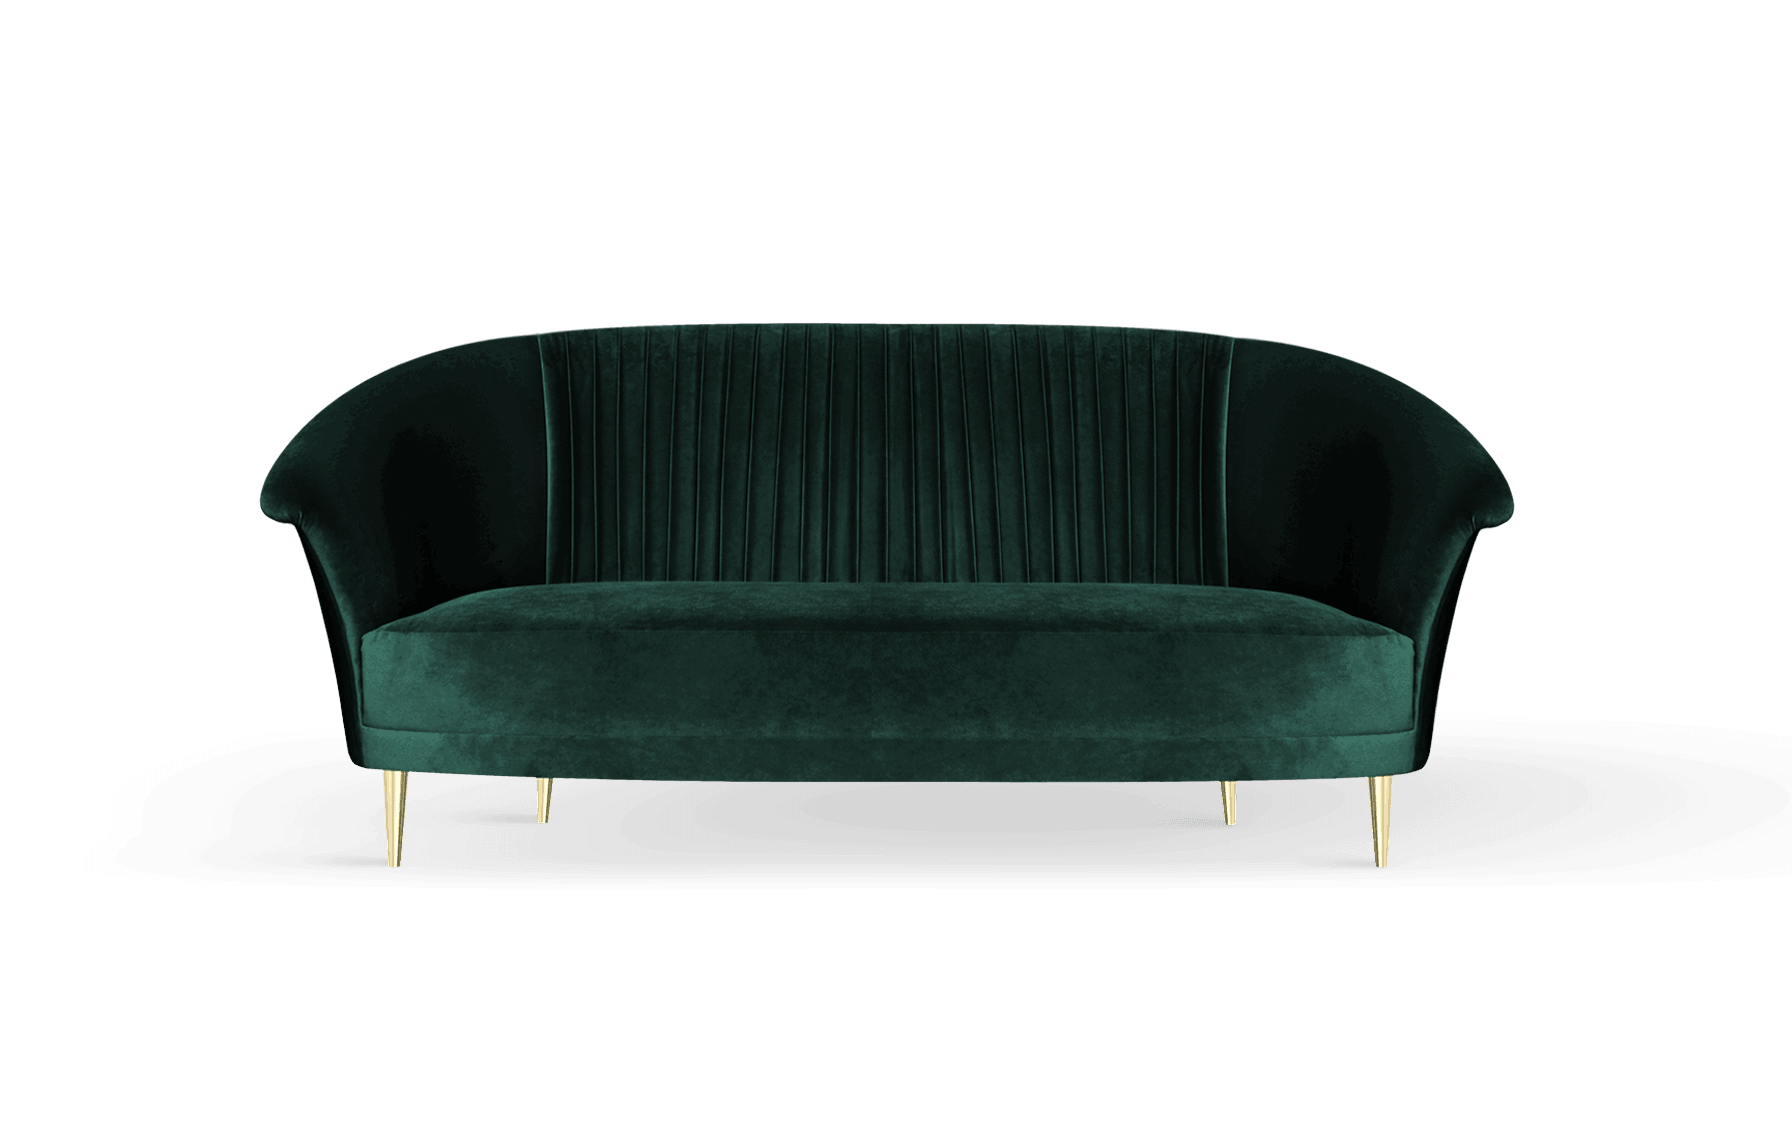 Lupino Mid-Century Modern Sofa in green cotton velvet